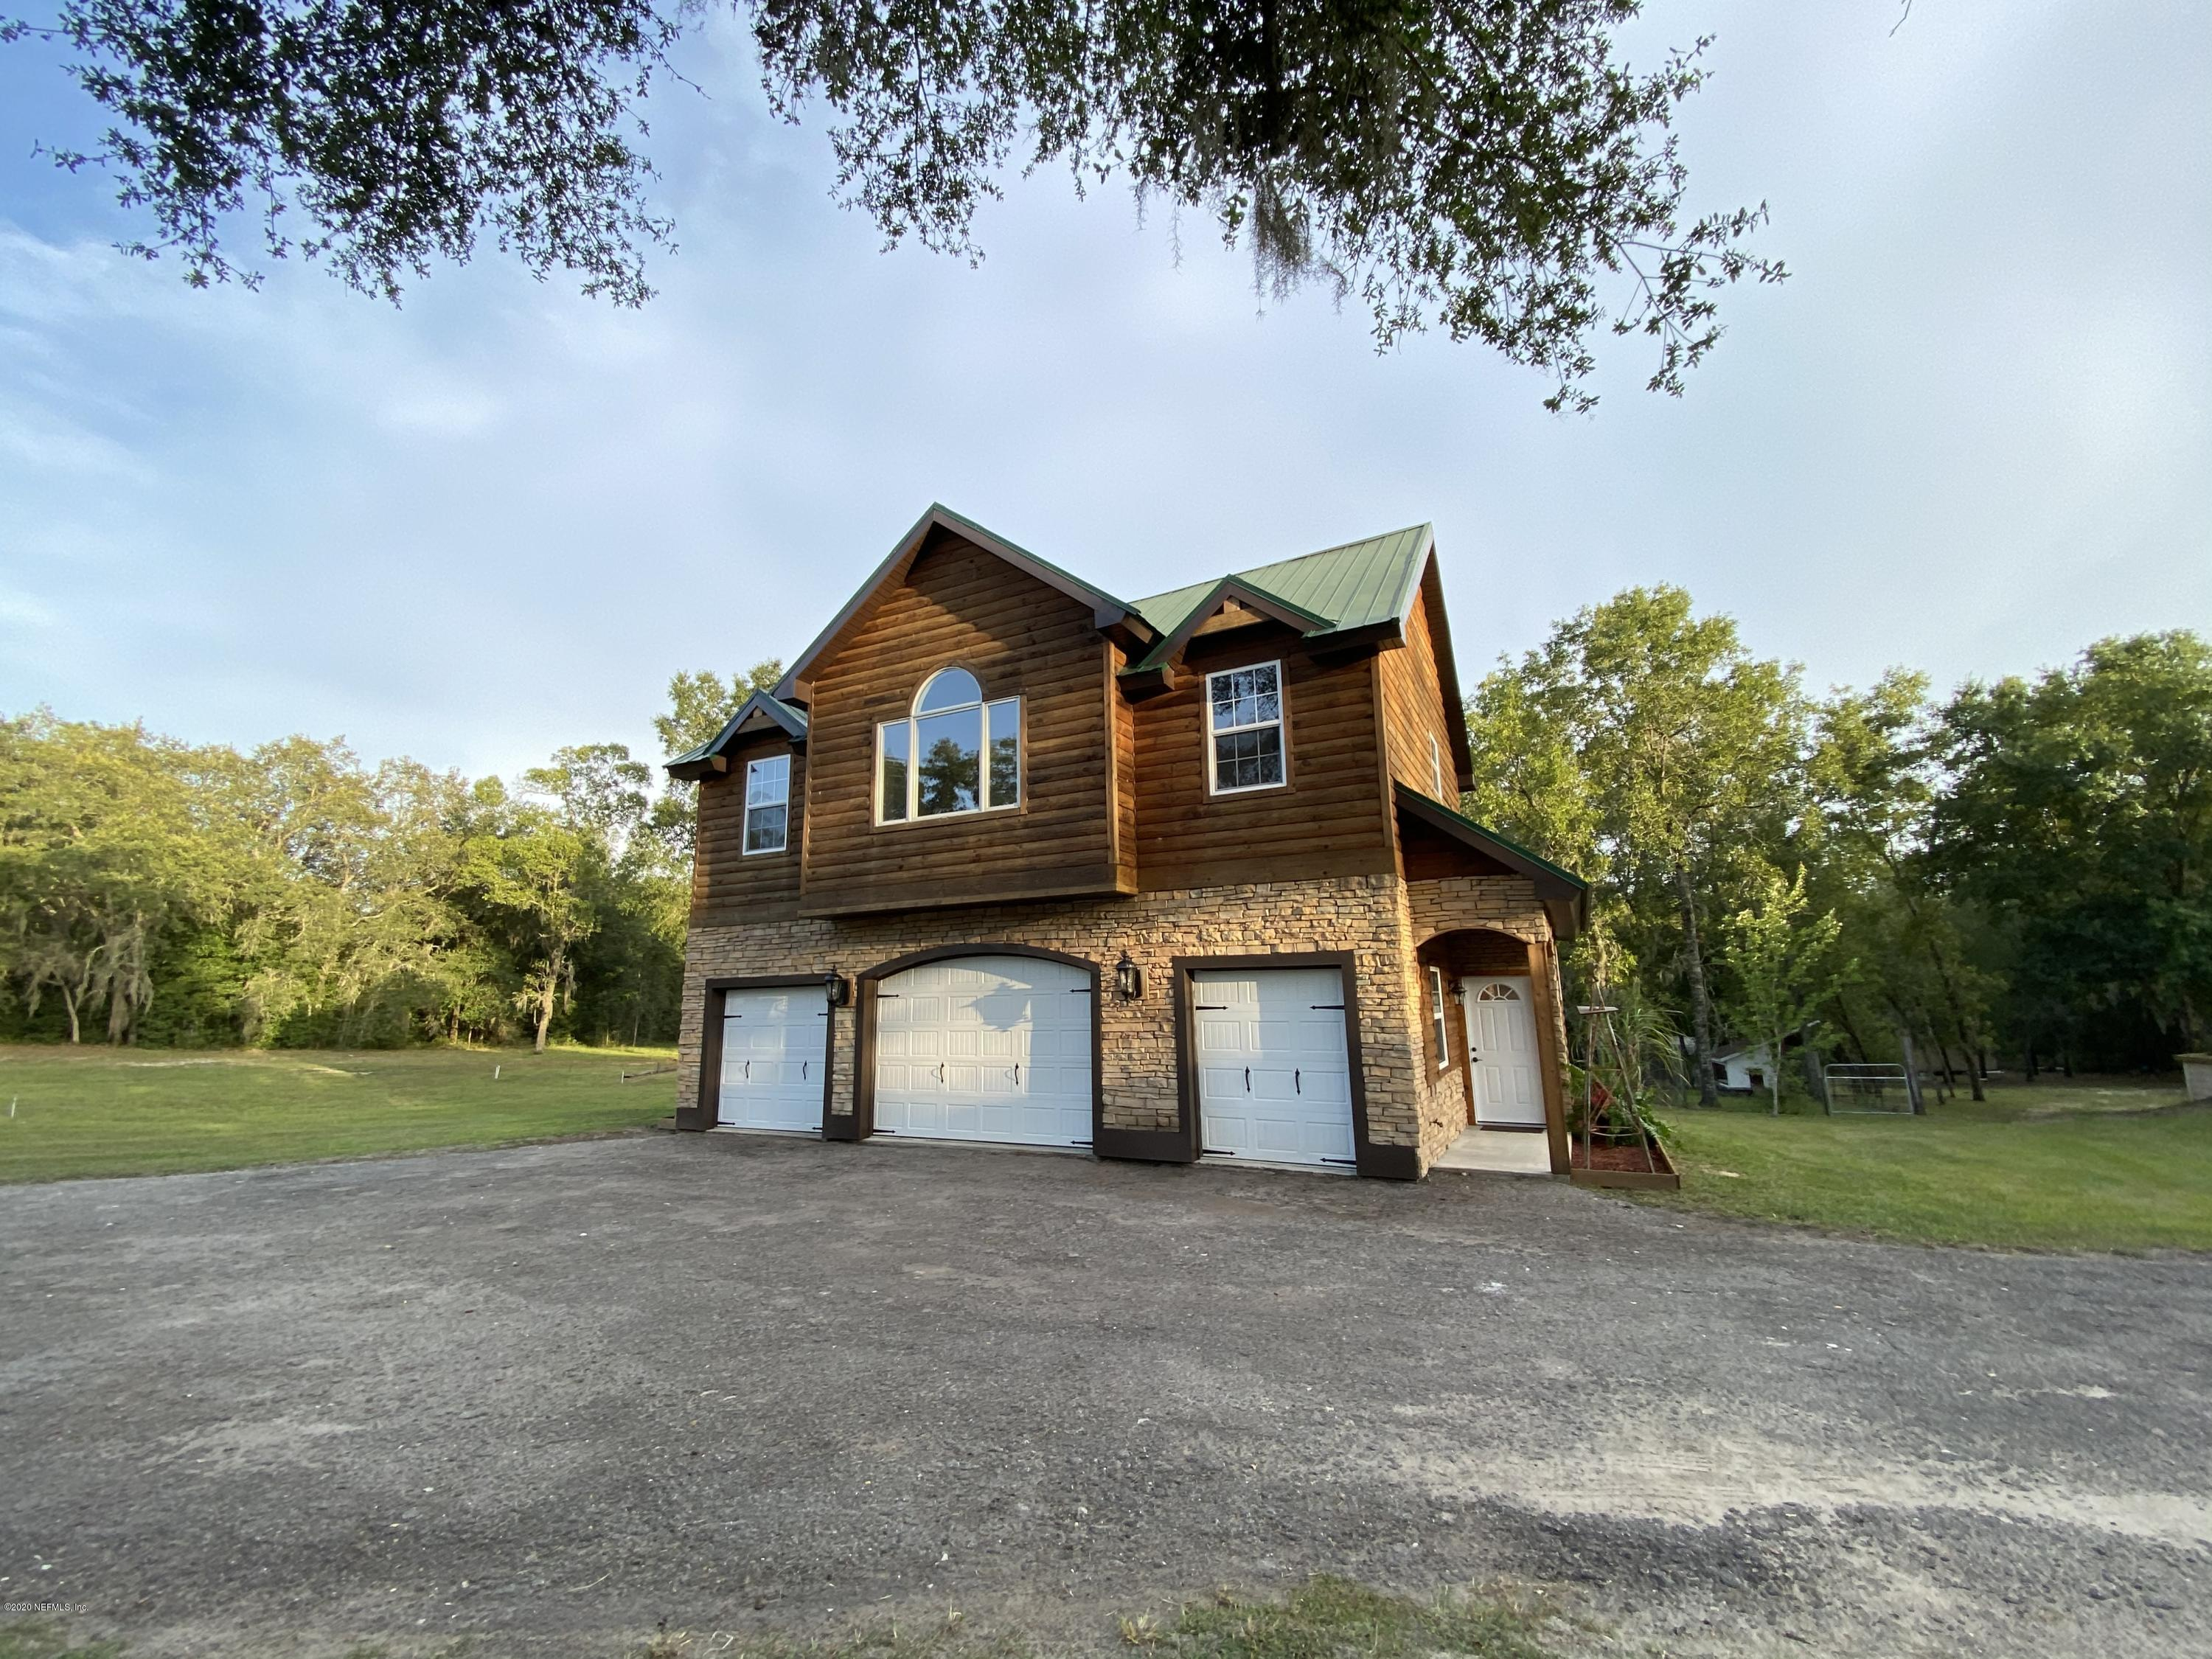 4941 PANTHER, KEYSTONE HEIGHTS, FLORIDA 32656, 4 Bedrooms Bedrooms, ,2 BathroomsBathrooms,Residential,For sale,PANTHER,1066133